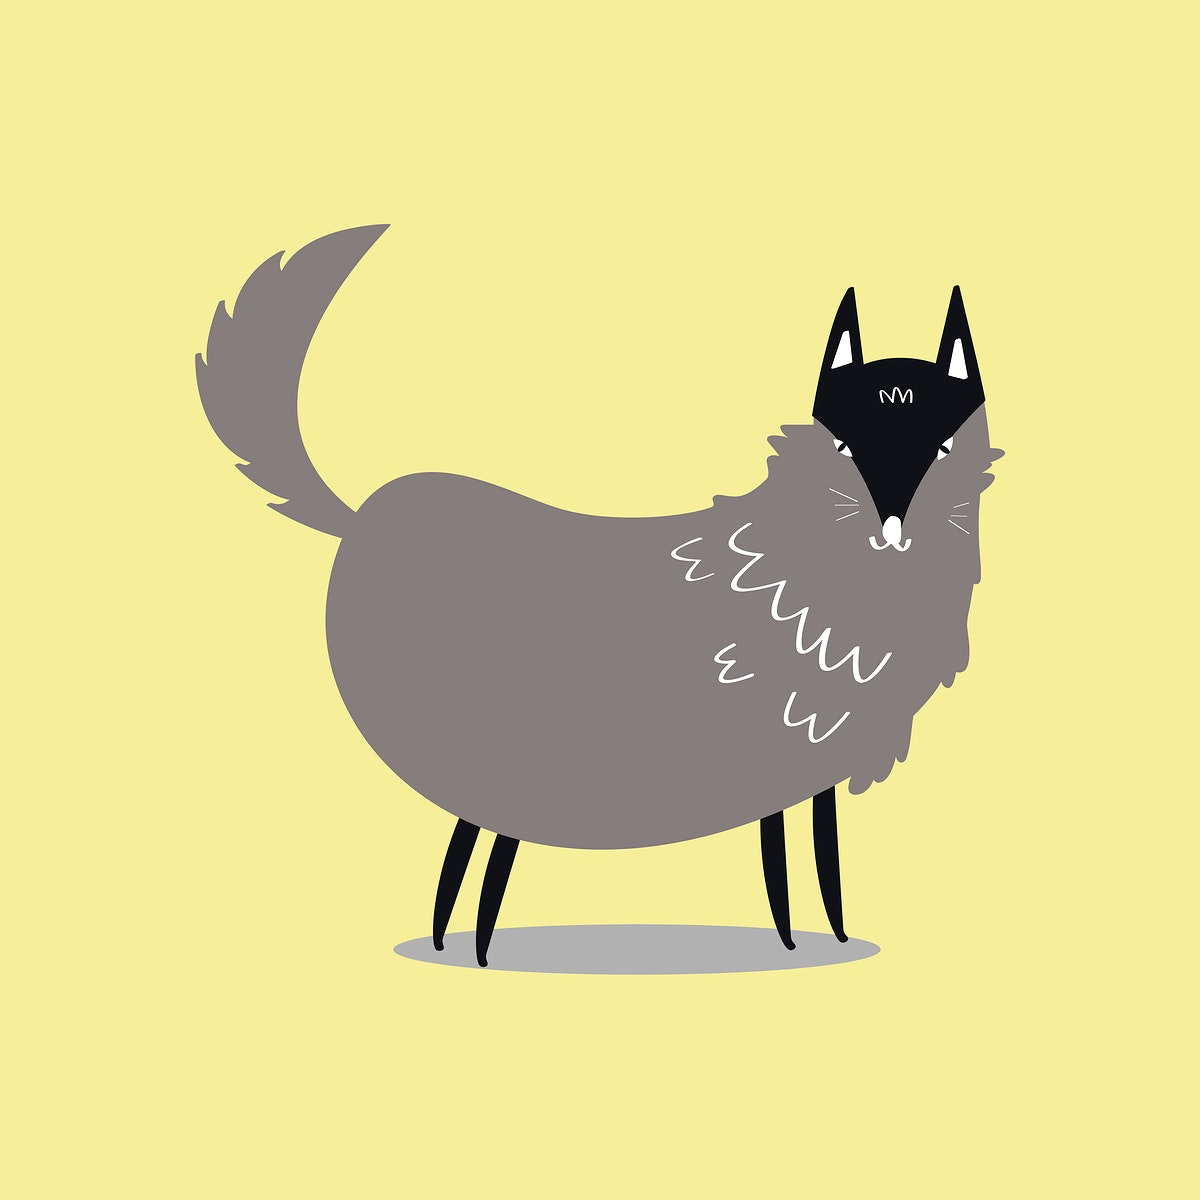 Cute wolf animal psd doodle sticker in gray for kids